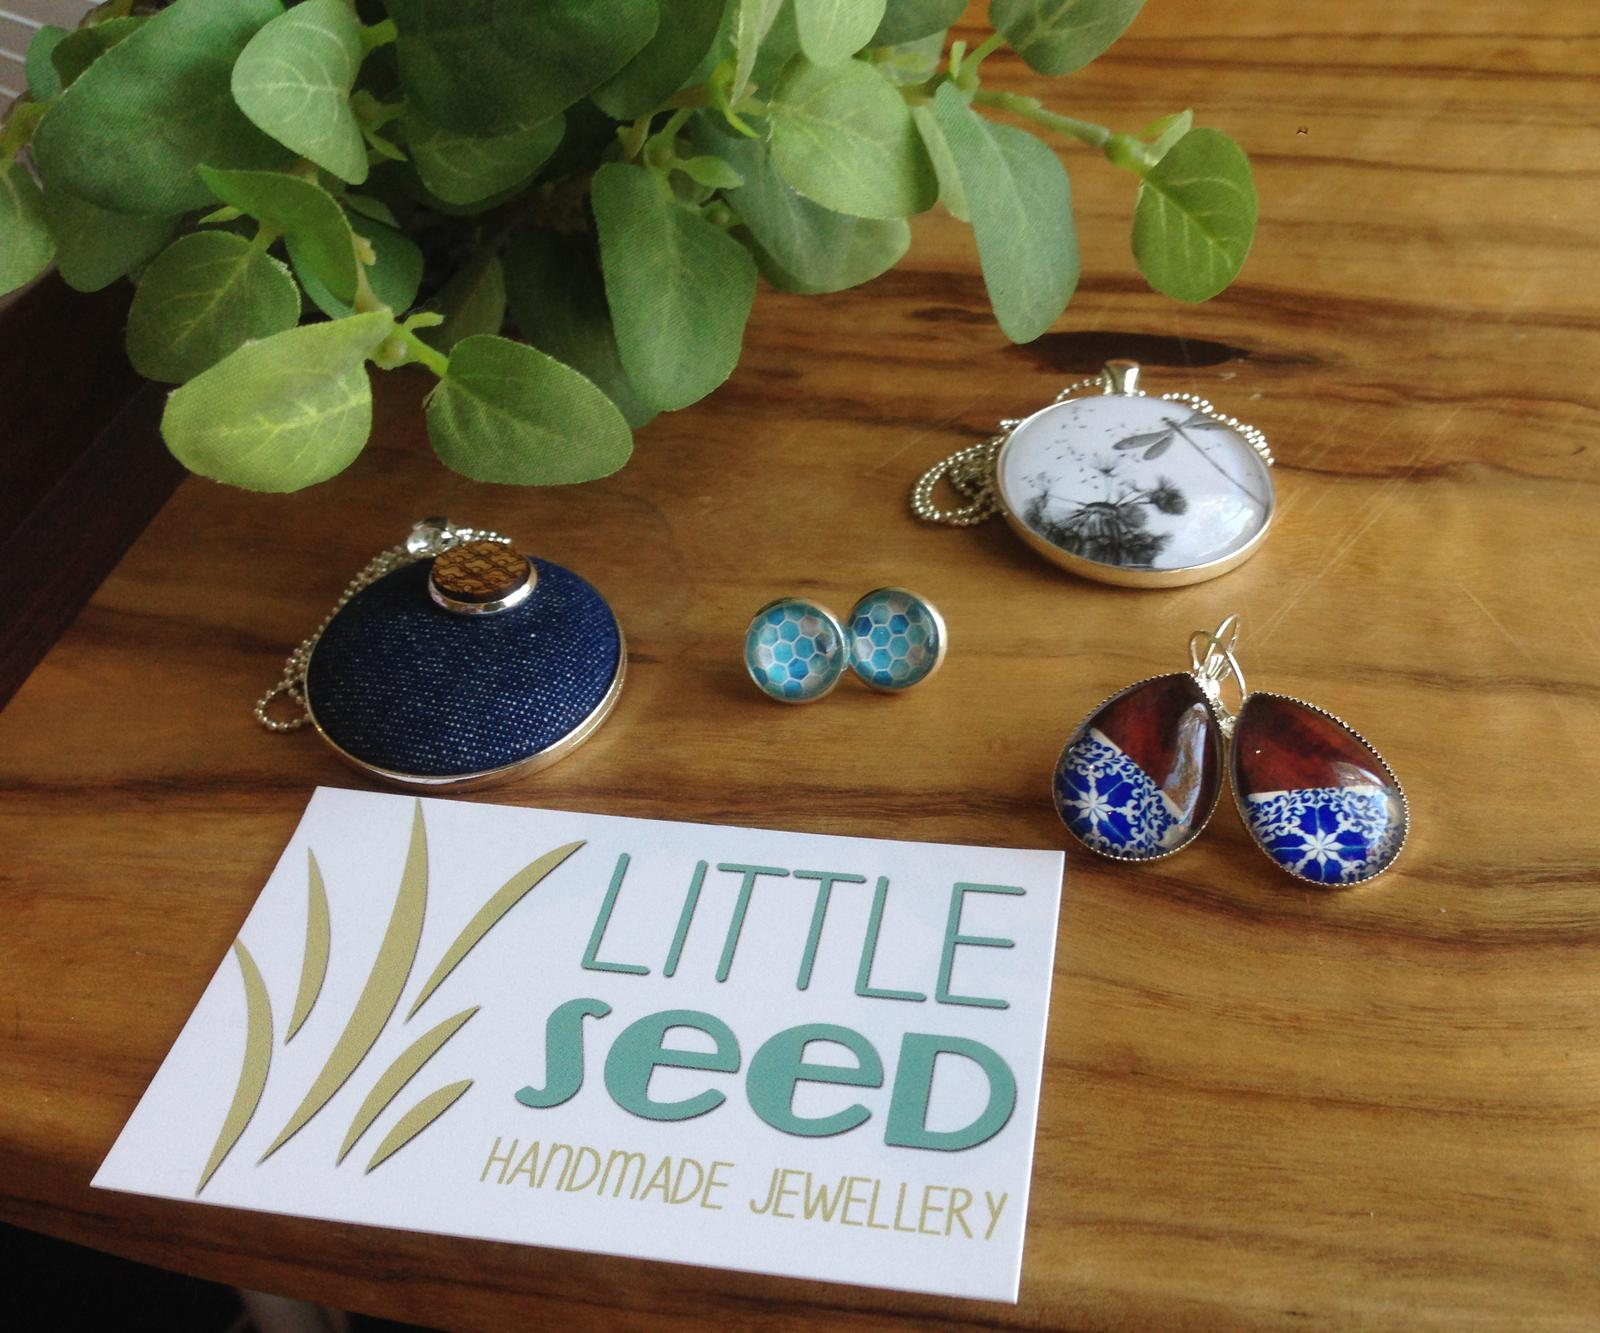 A selection of items created by Little Seed